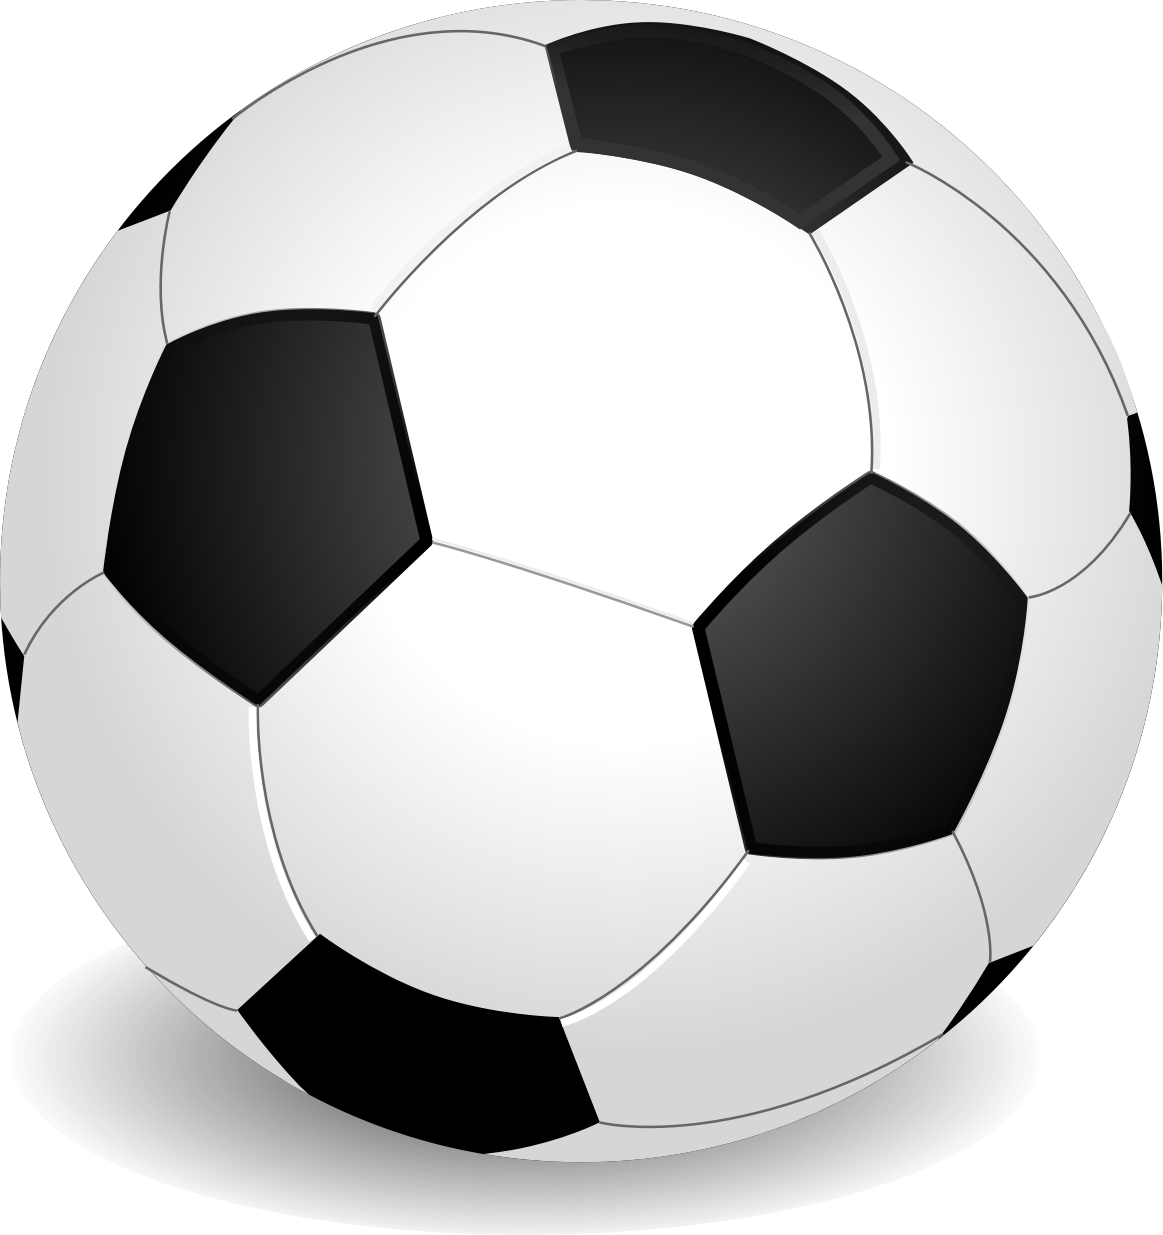 Clipart - Football (Soccer Ball) picture